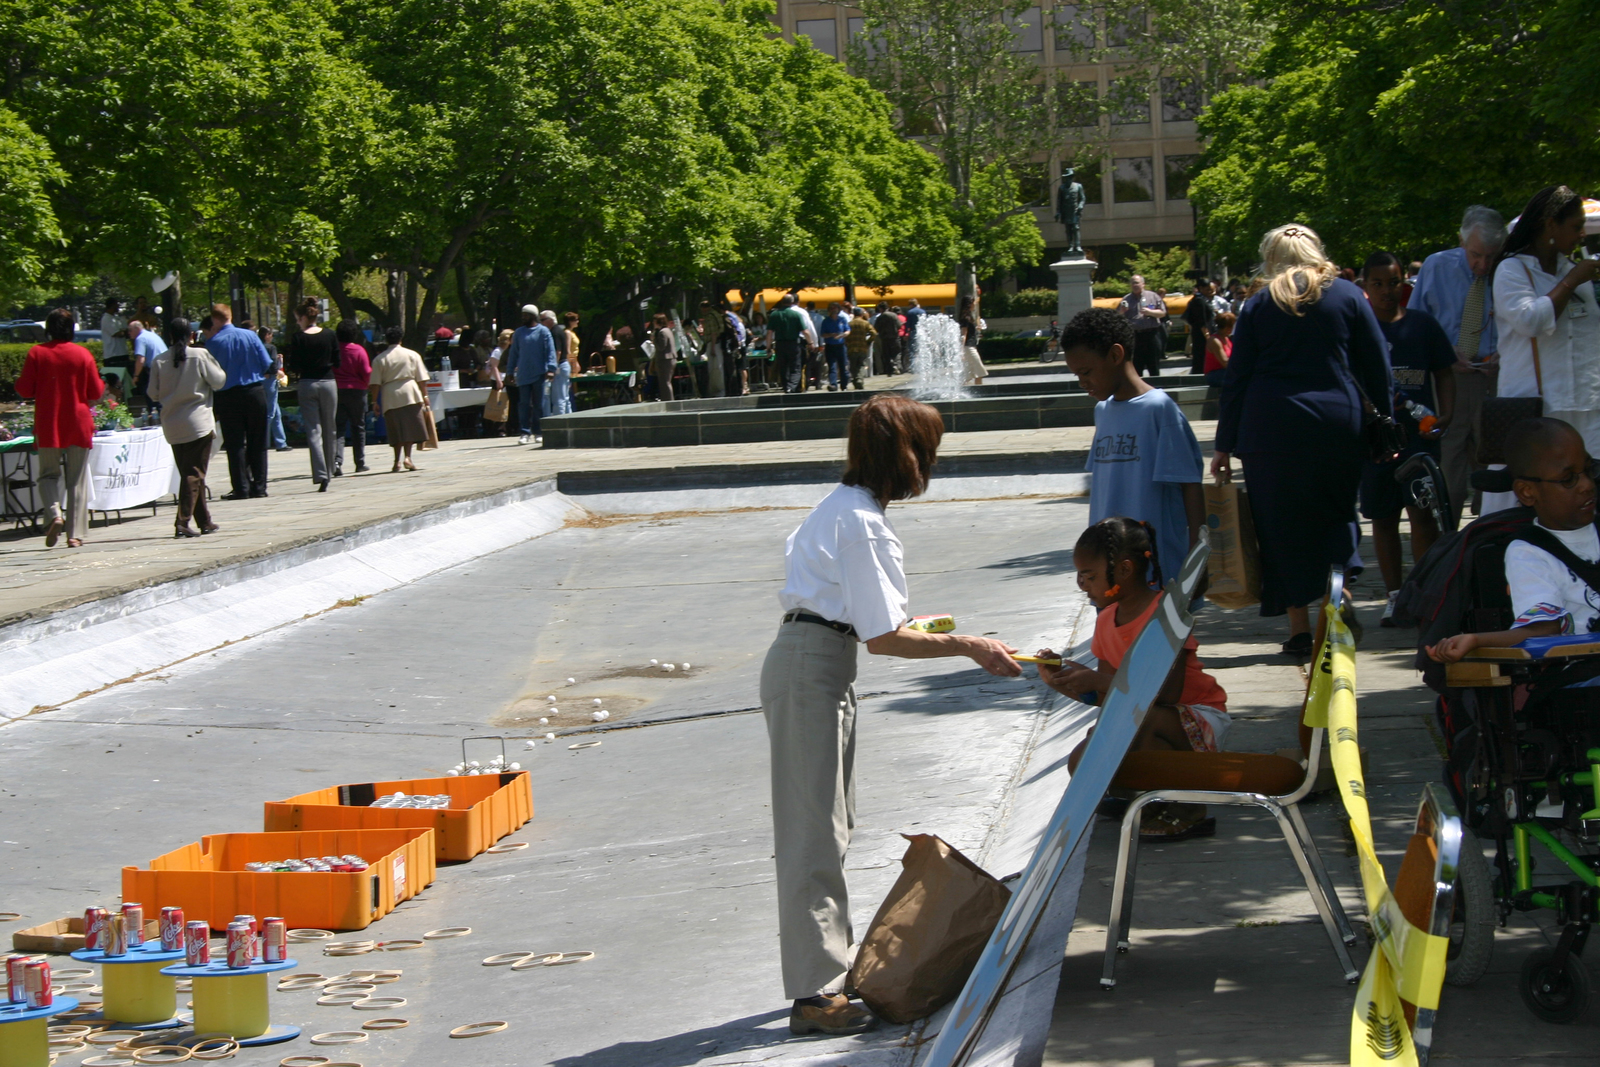 [Assignment: 48-DPA-N_EDay_Mall_4-20-06] Earth Day activities [on and around] the National Mall, [including Department of the Interior and other federal agency displays] [48-DPA-N_EDay_Mall_4-20-06_IMG_5869.JPG]